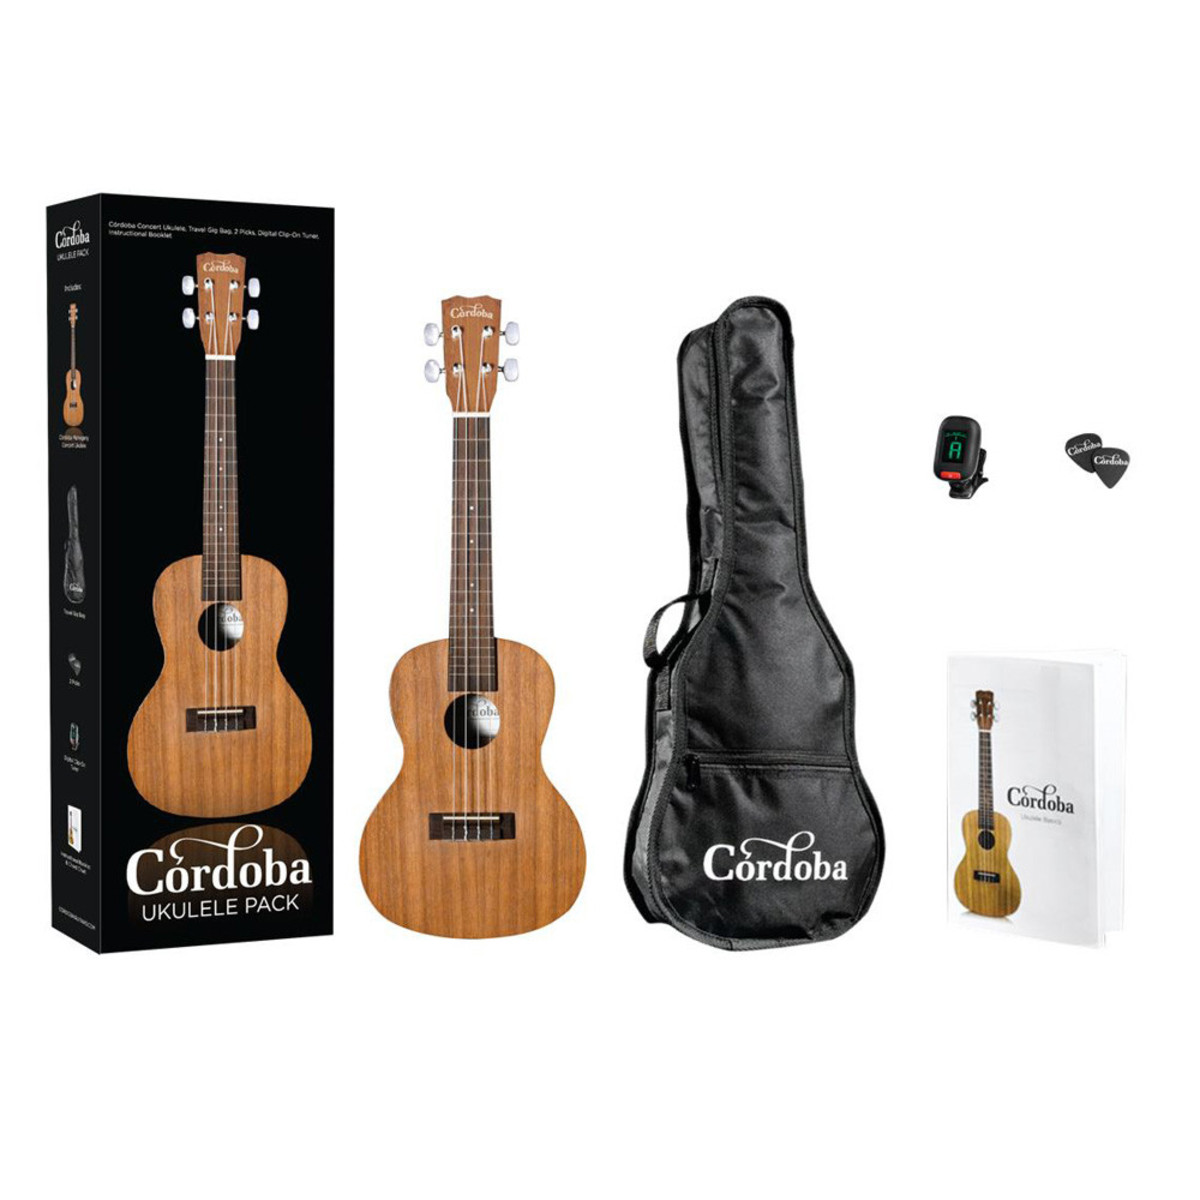 Image of Cordoba UP100 Complete Concert Ukulele Pack